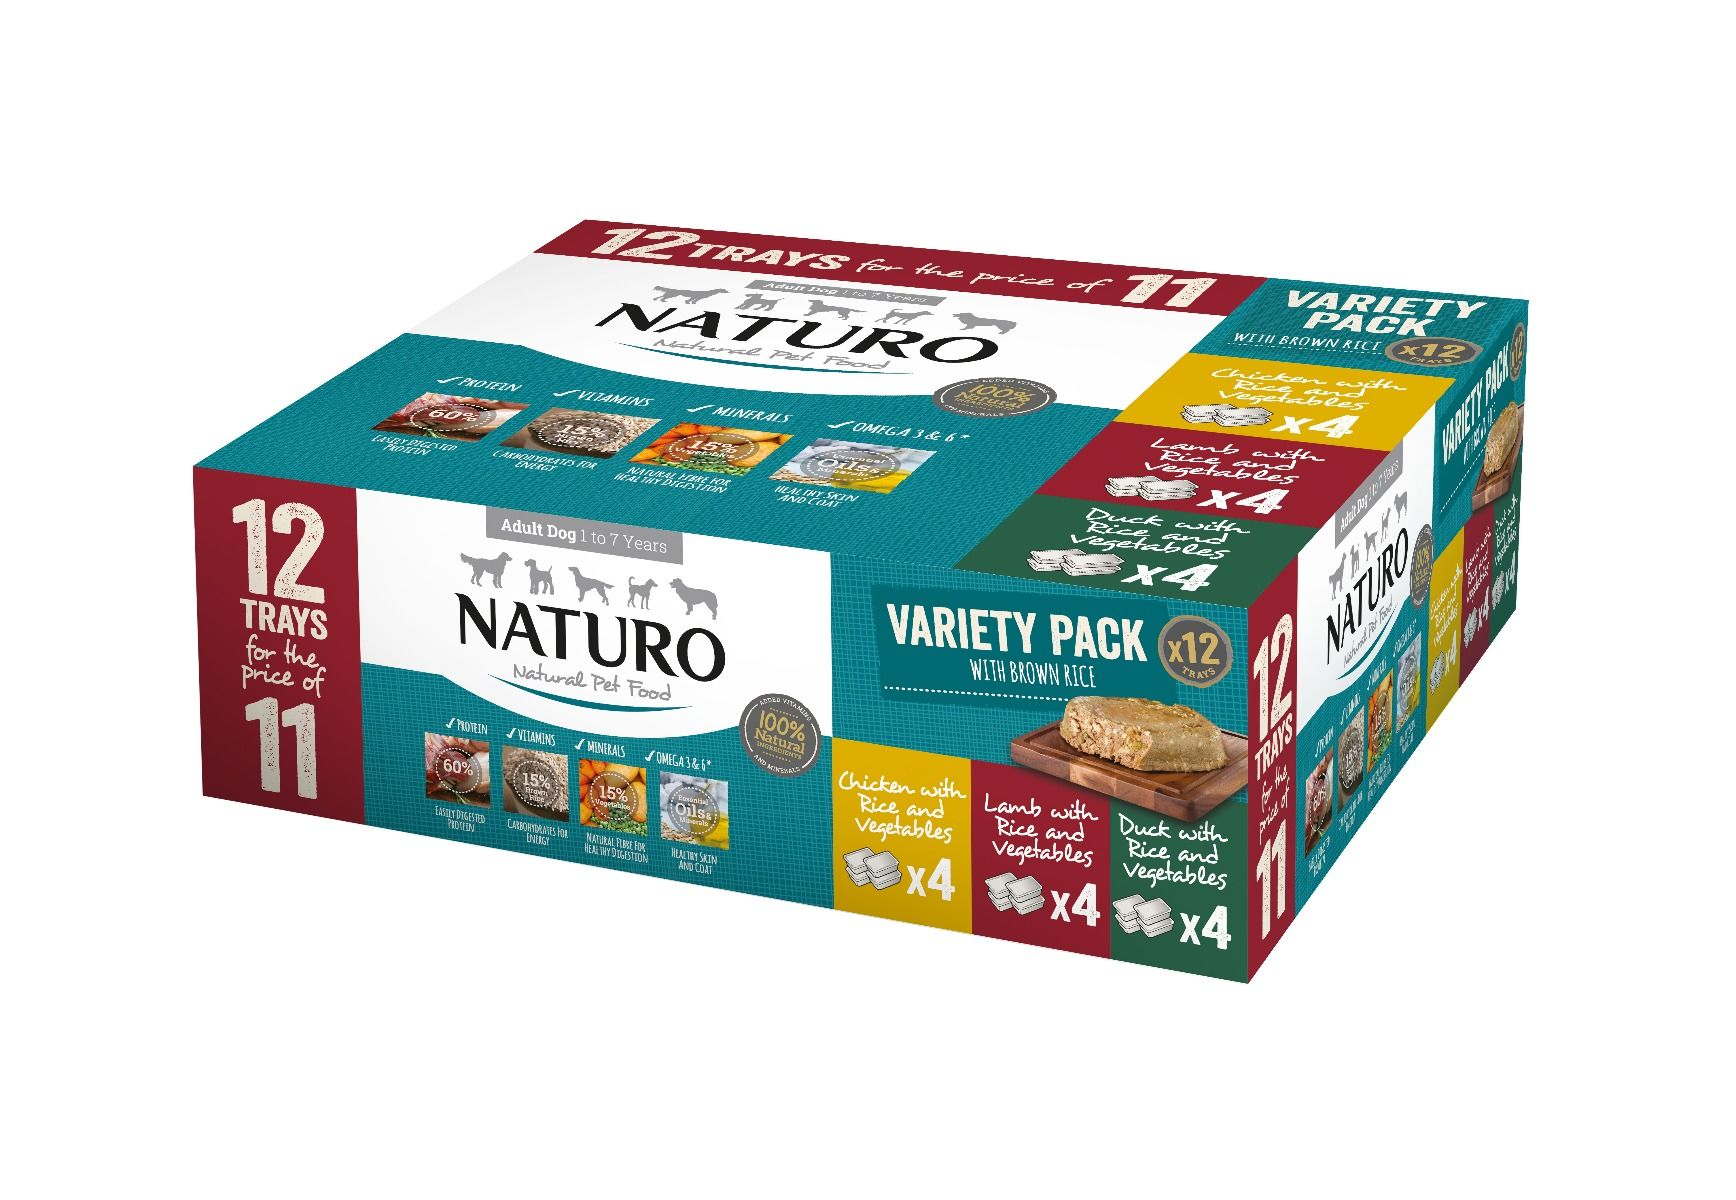 Naturo Adult Dog with Rice Variety Trays, 400-g, 12-pack